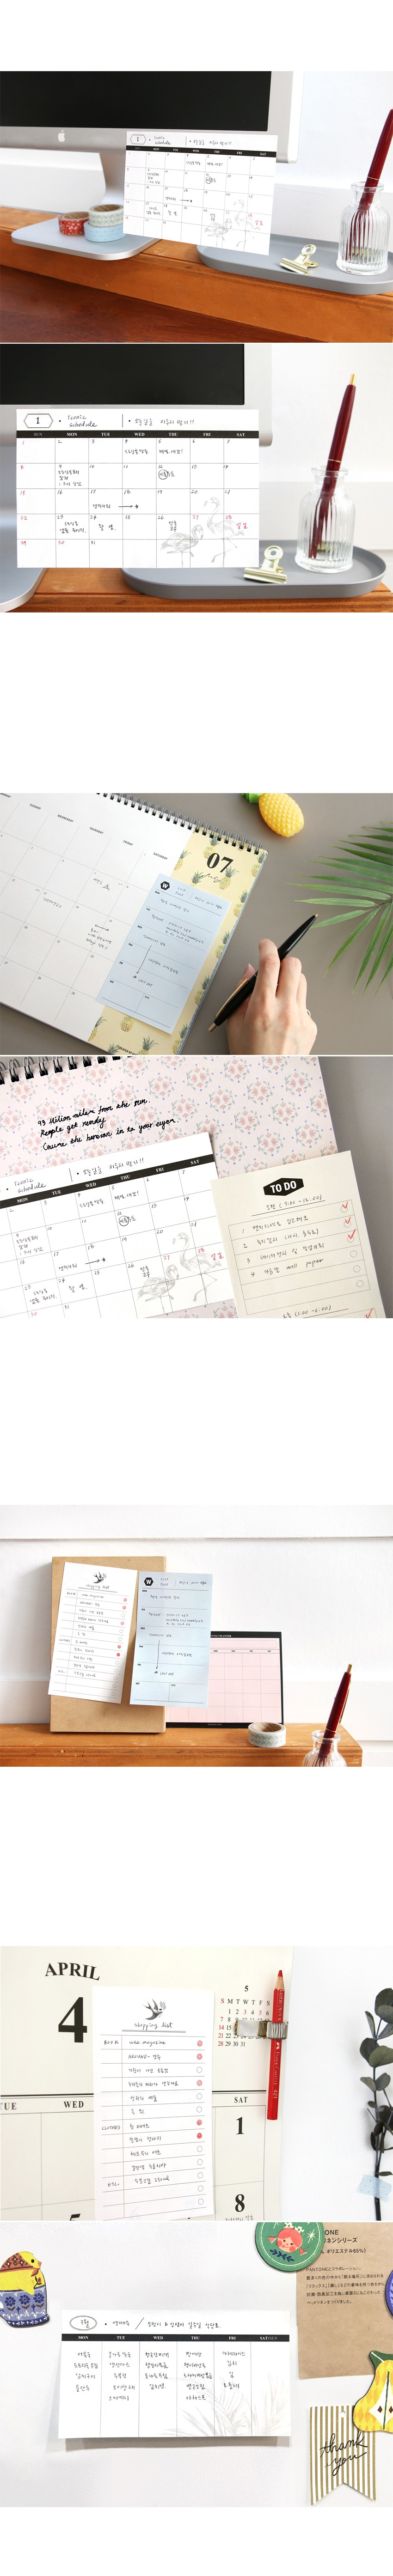 sticky-monthly-planner-4.jpg